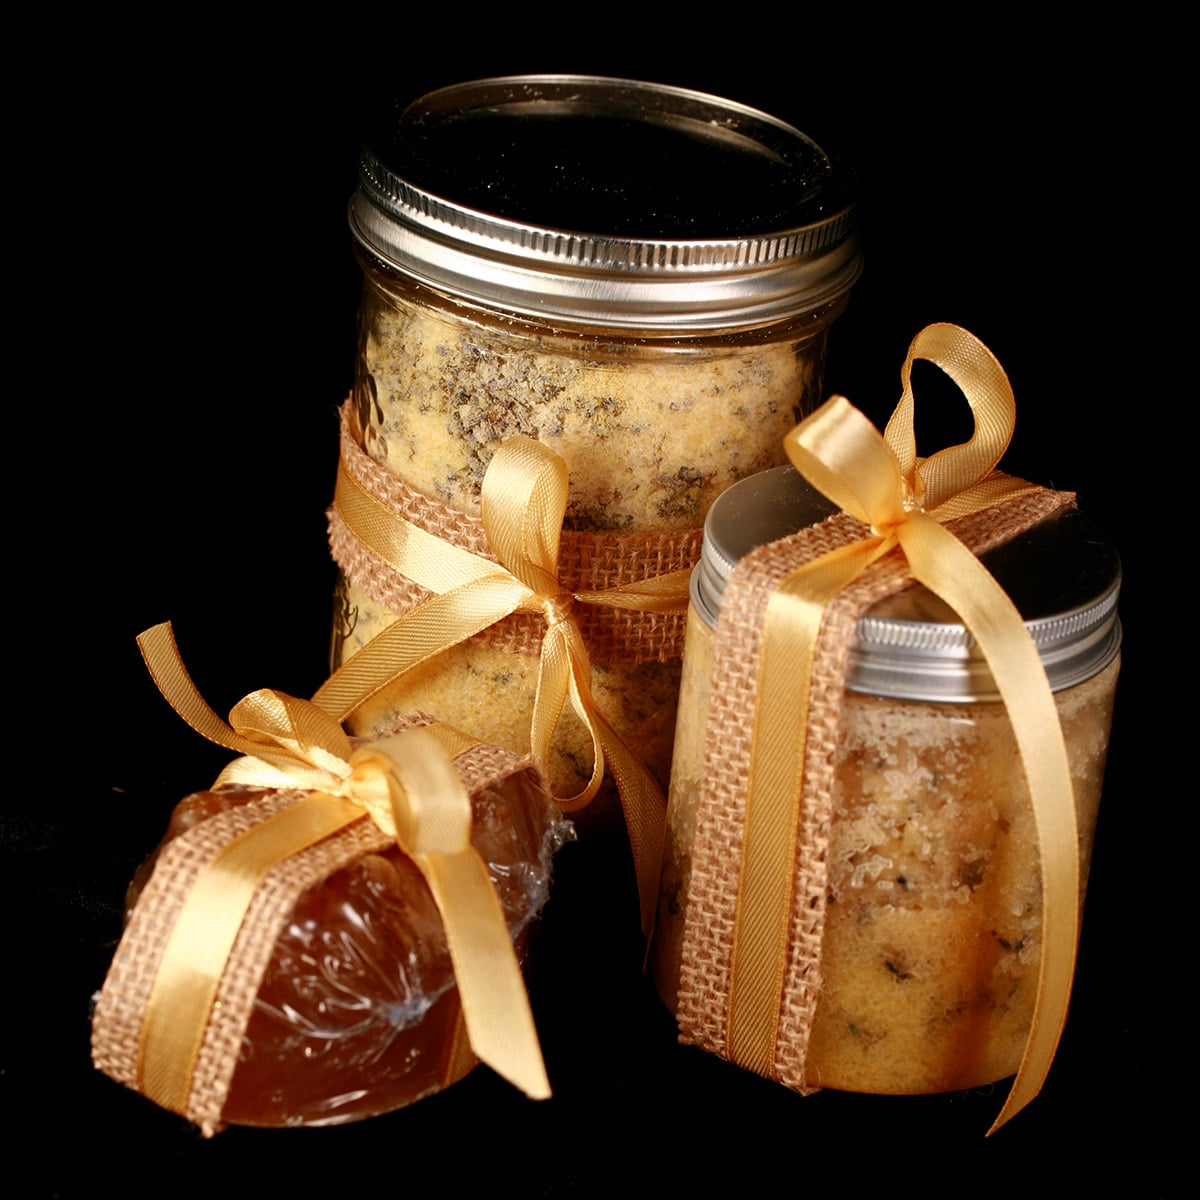 A 3 piece mustard bath gift set - the mustard bath salt, a salt scrub, and a nubby yellow mustard soap. They are all accented with yellow ribbon.